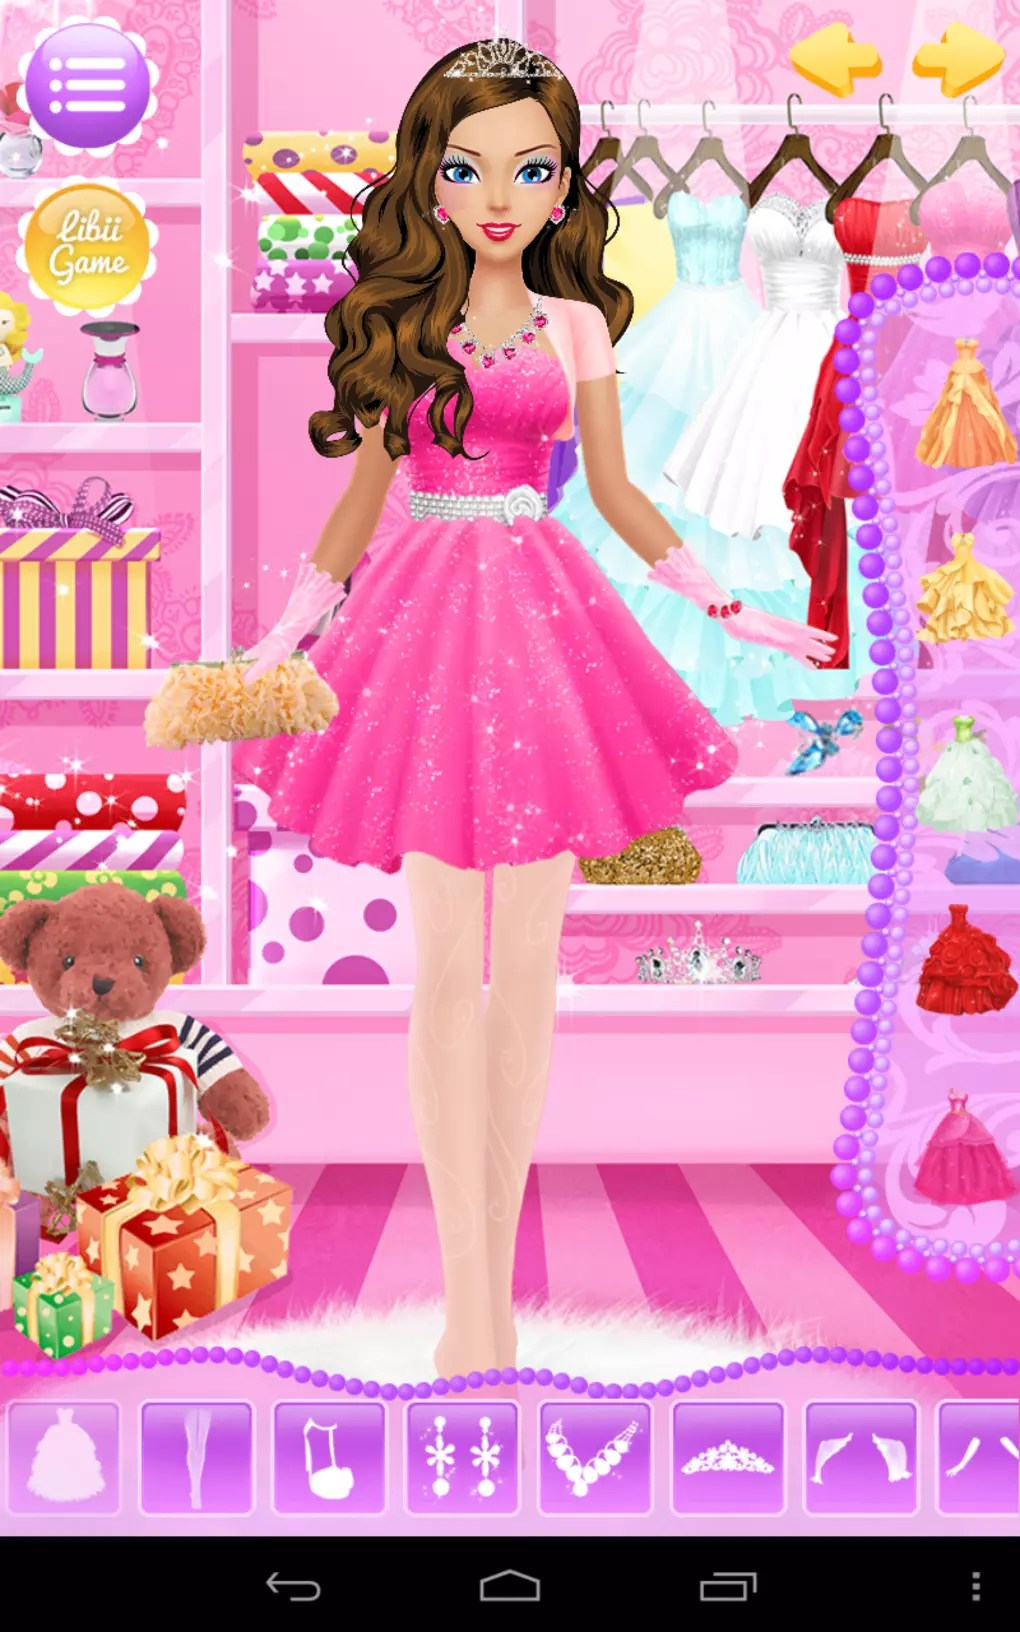 Barbie Solon Games : barbie, solon, games, Princess, Salon, Android, Download